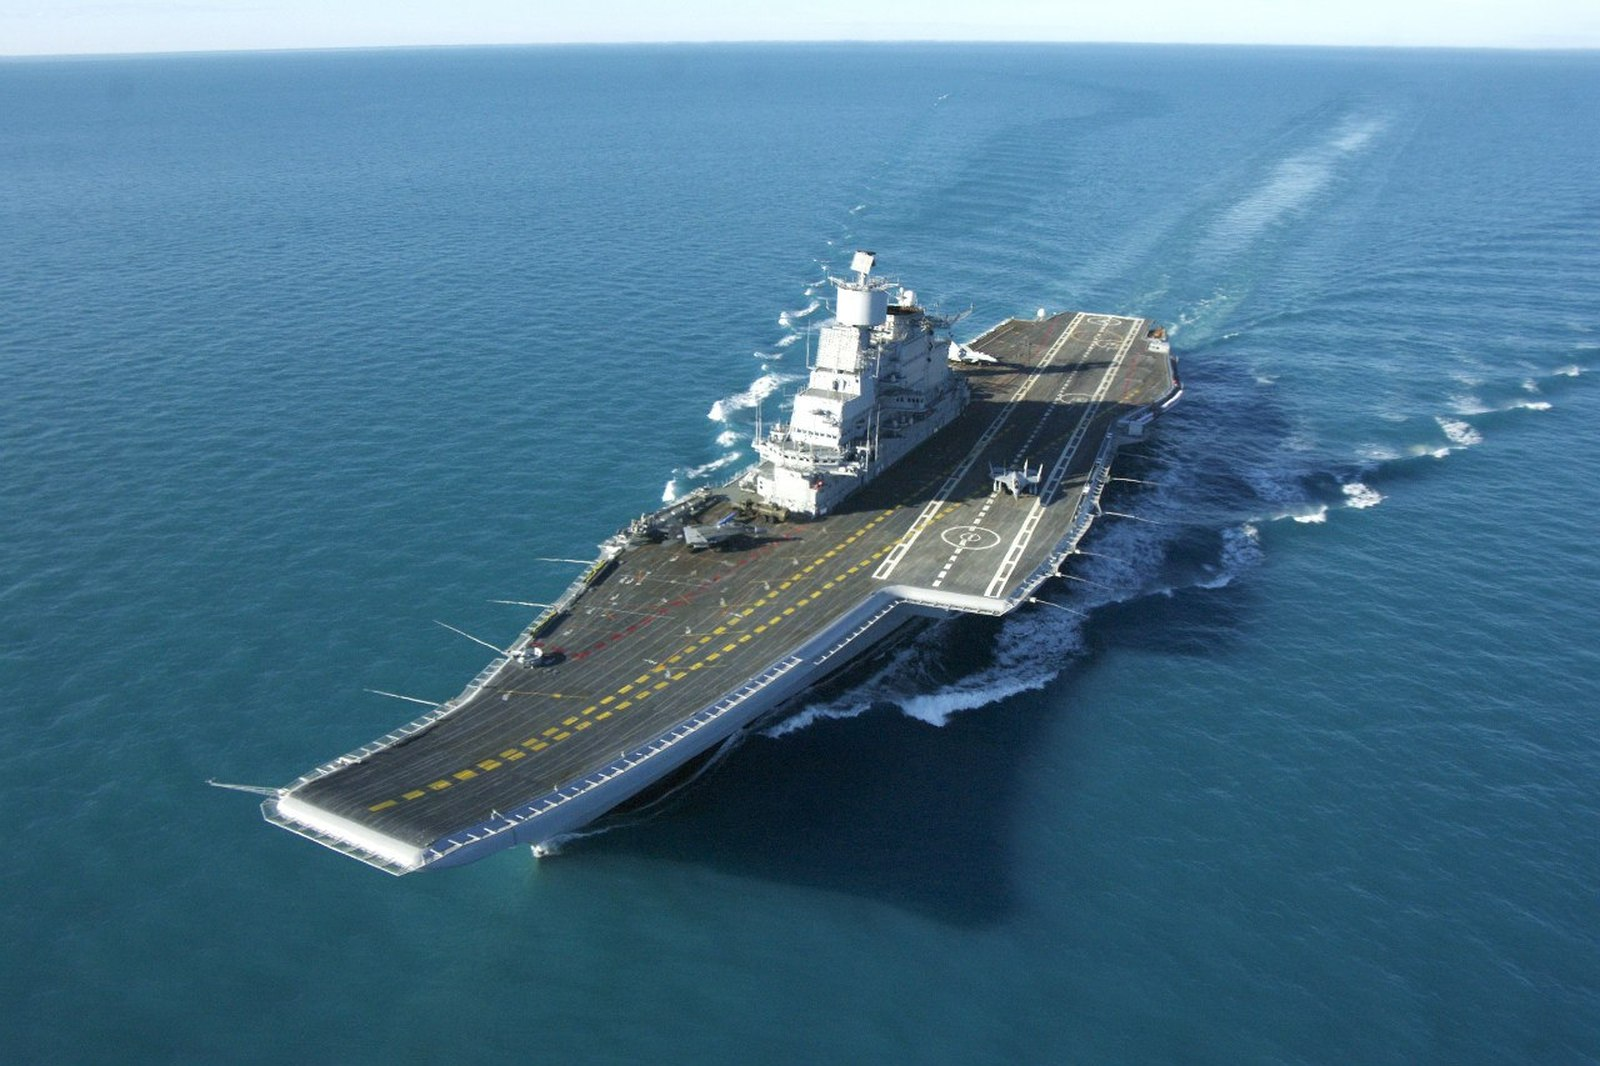 INS Vikramaditya of the Indian Navy.